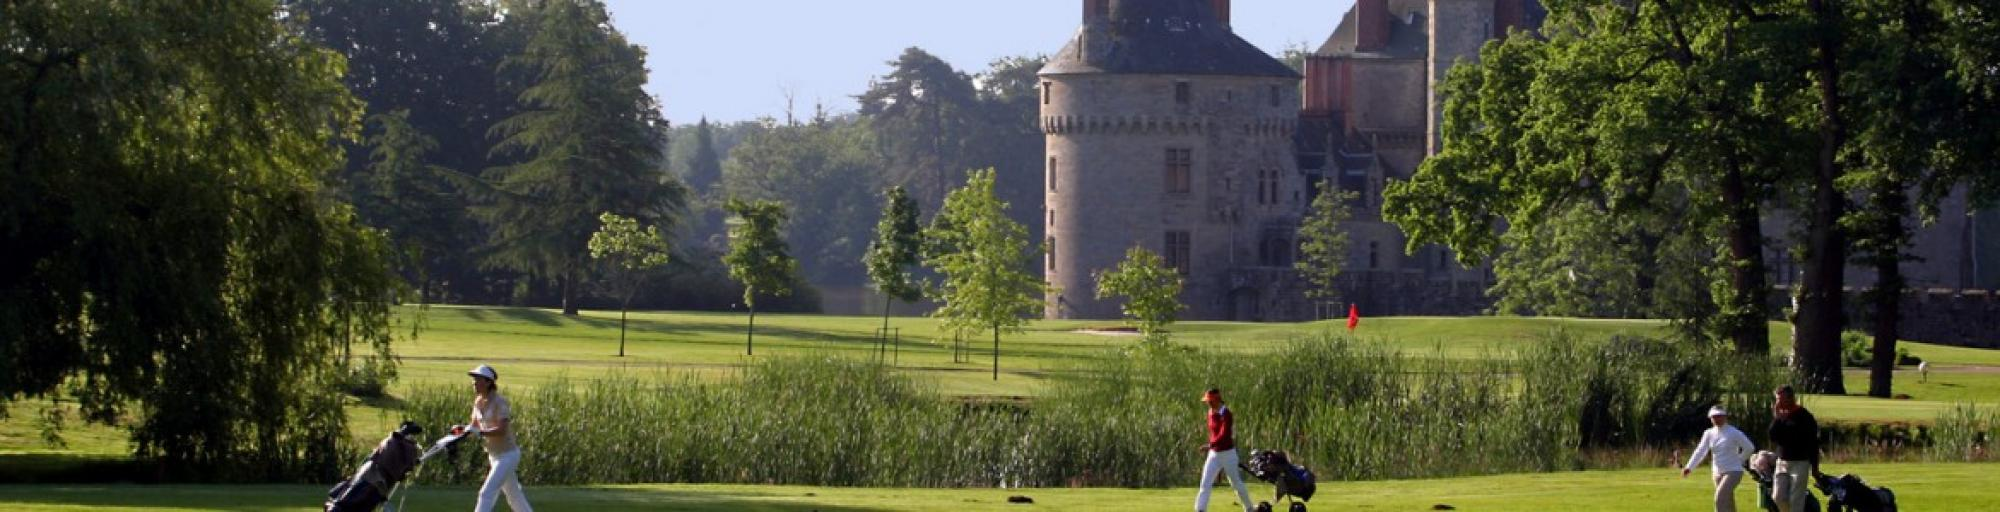 The Chateau Golf des Sept Tours's picturesque golf course in gorgeous Loire Valley.